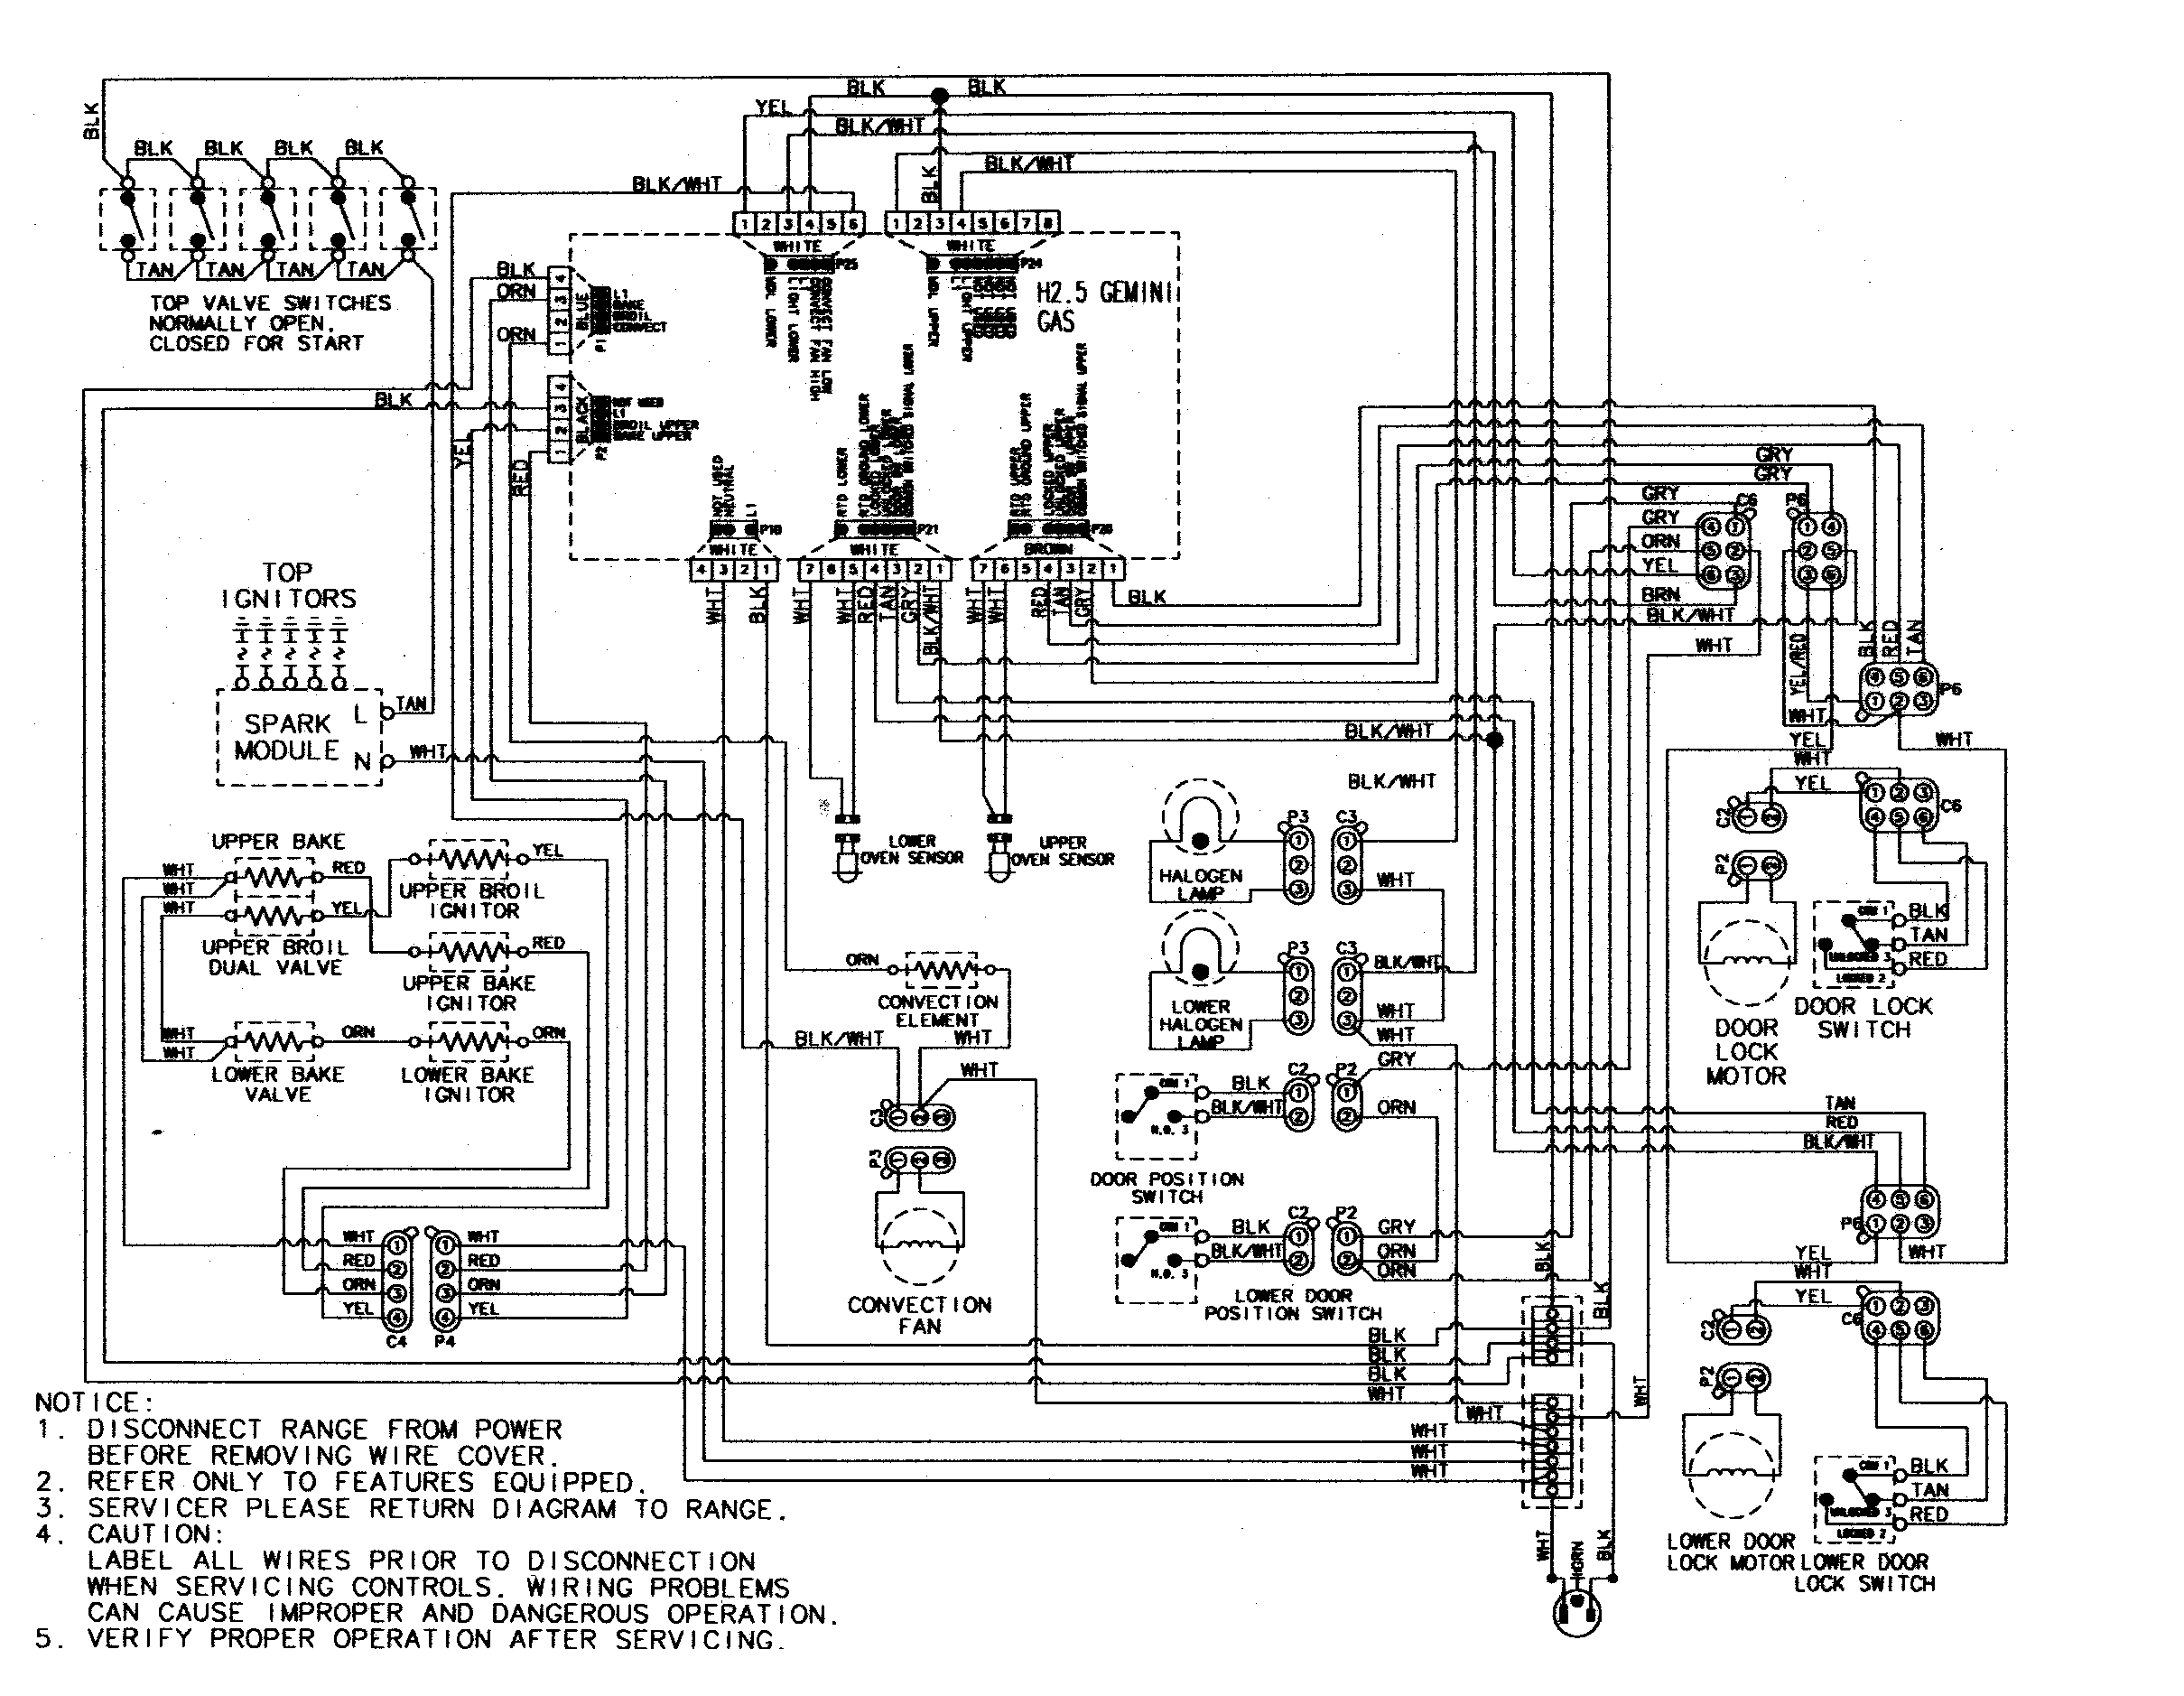 wiring information at series 13 14 parts wiring diagram ge side by side refrigerators the wiring diagram ge profile microwave wiring diagram at panicattacktreatment.co